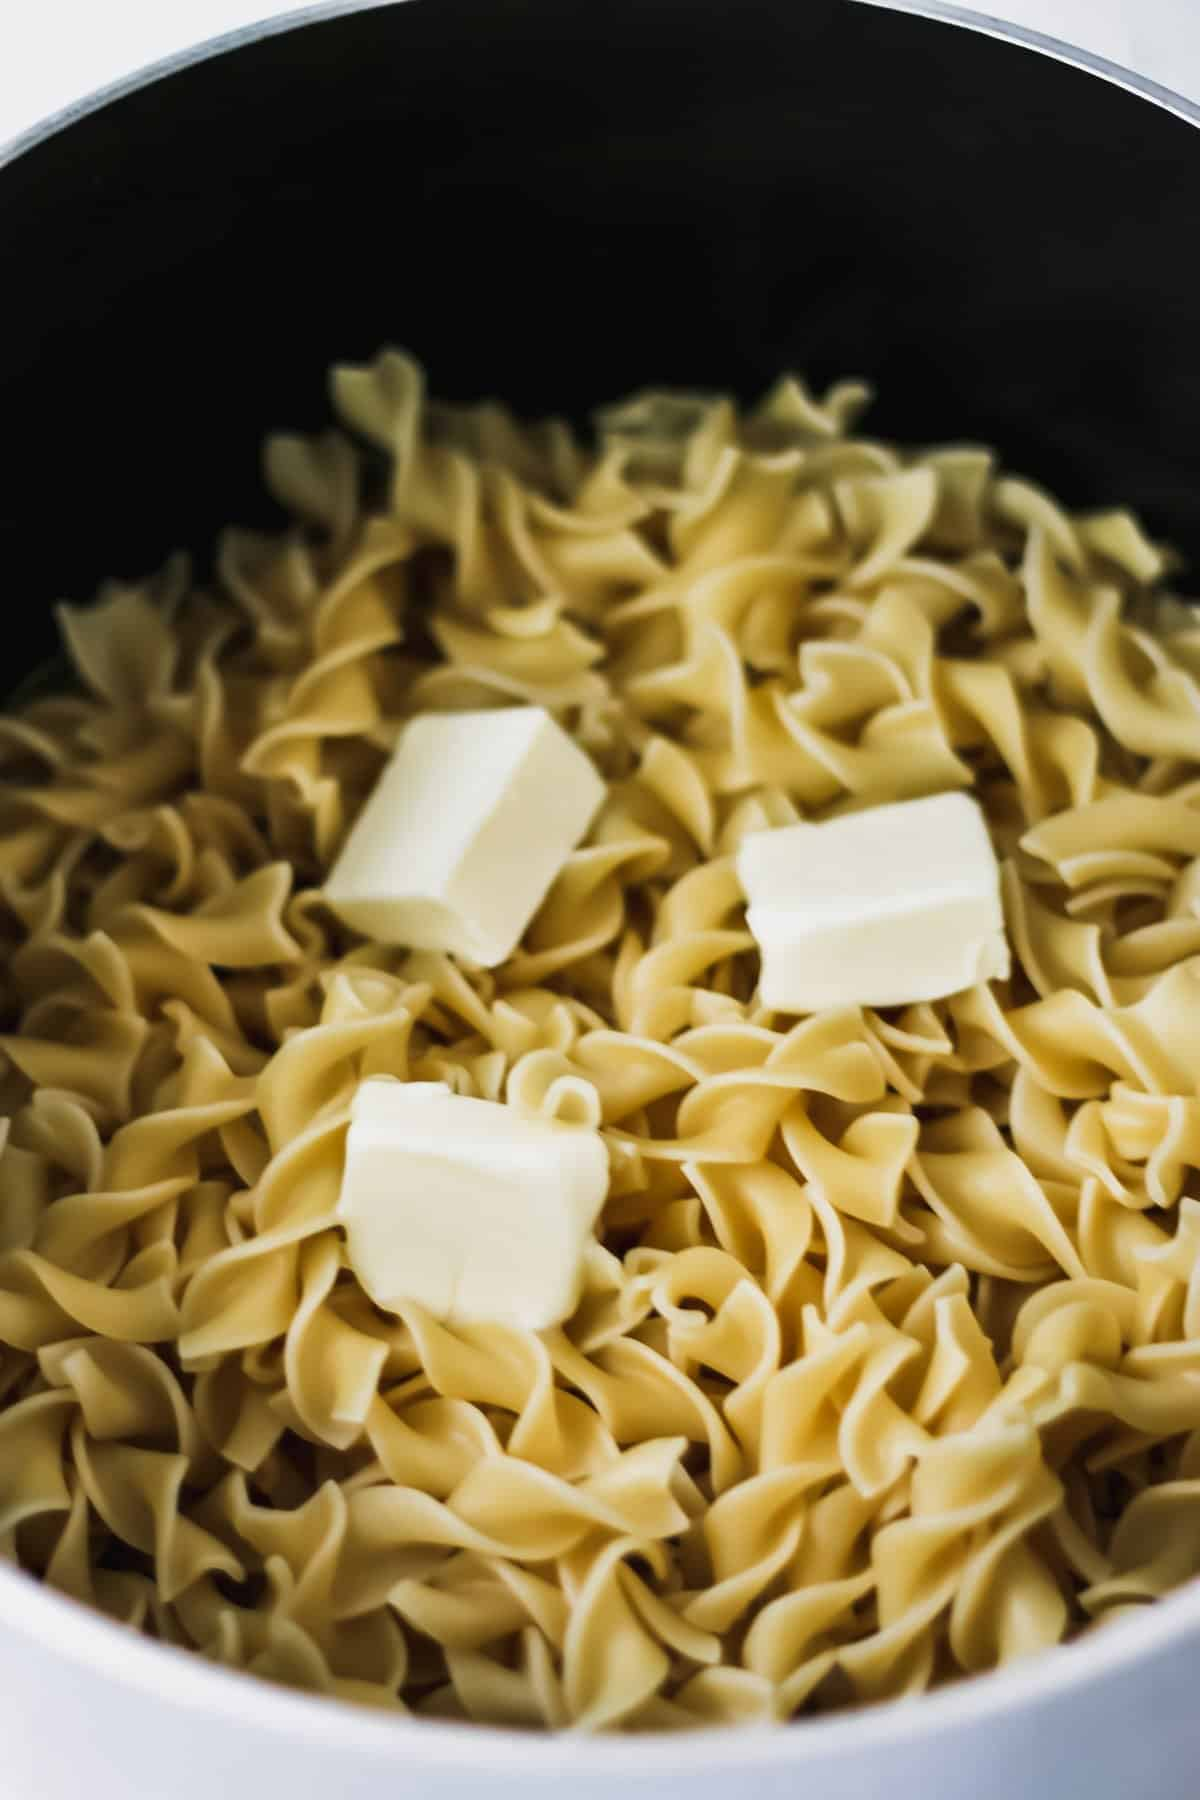 Cooked egg noodles with 3 pads of butter on top.